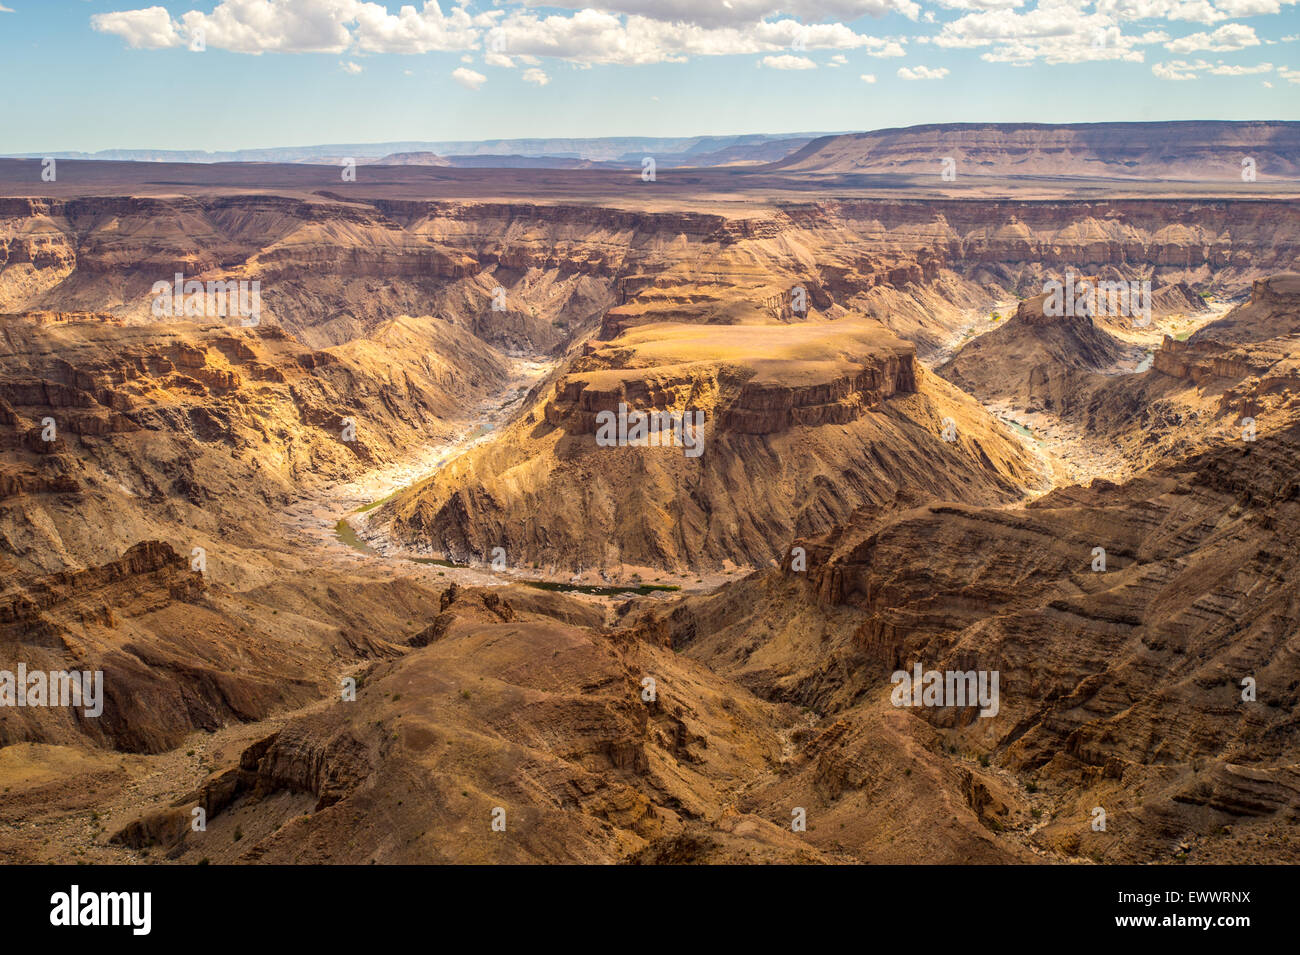 Hobas, Namibia, Africa - Fish River Canyon, the largest ...